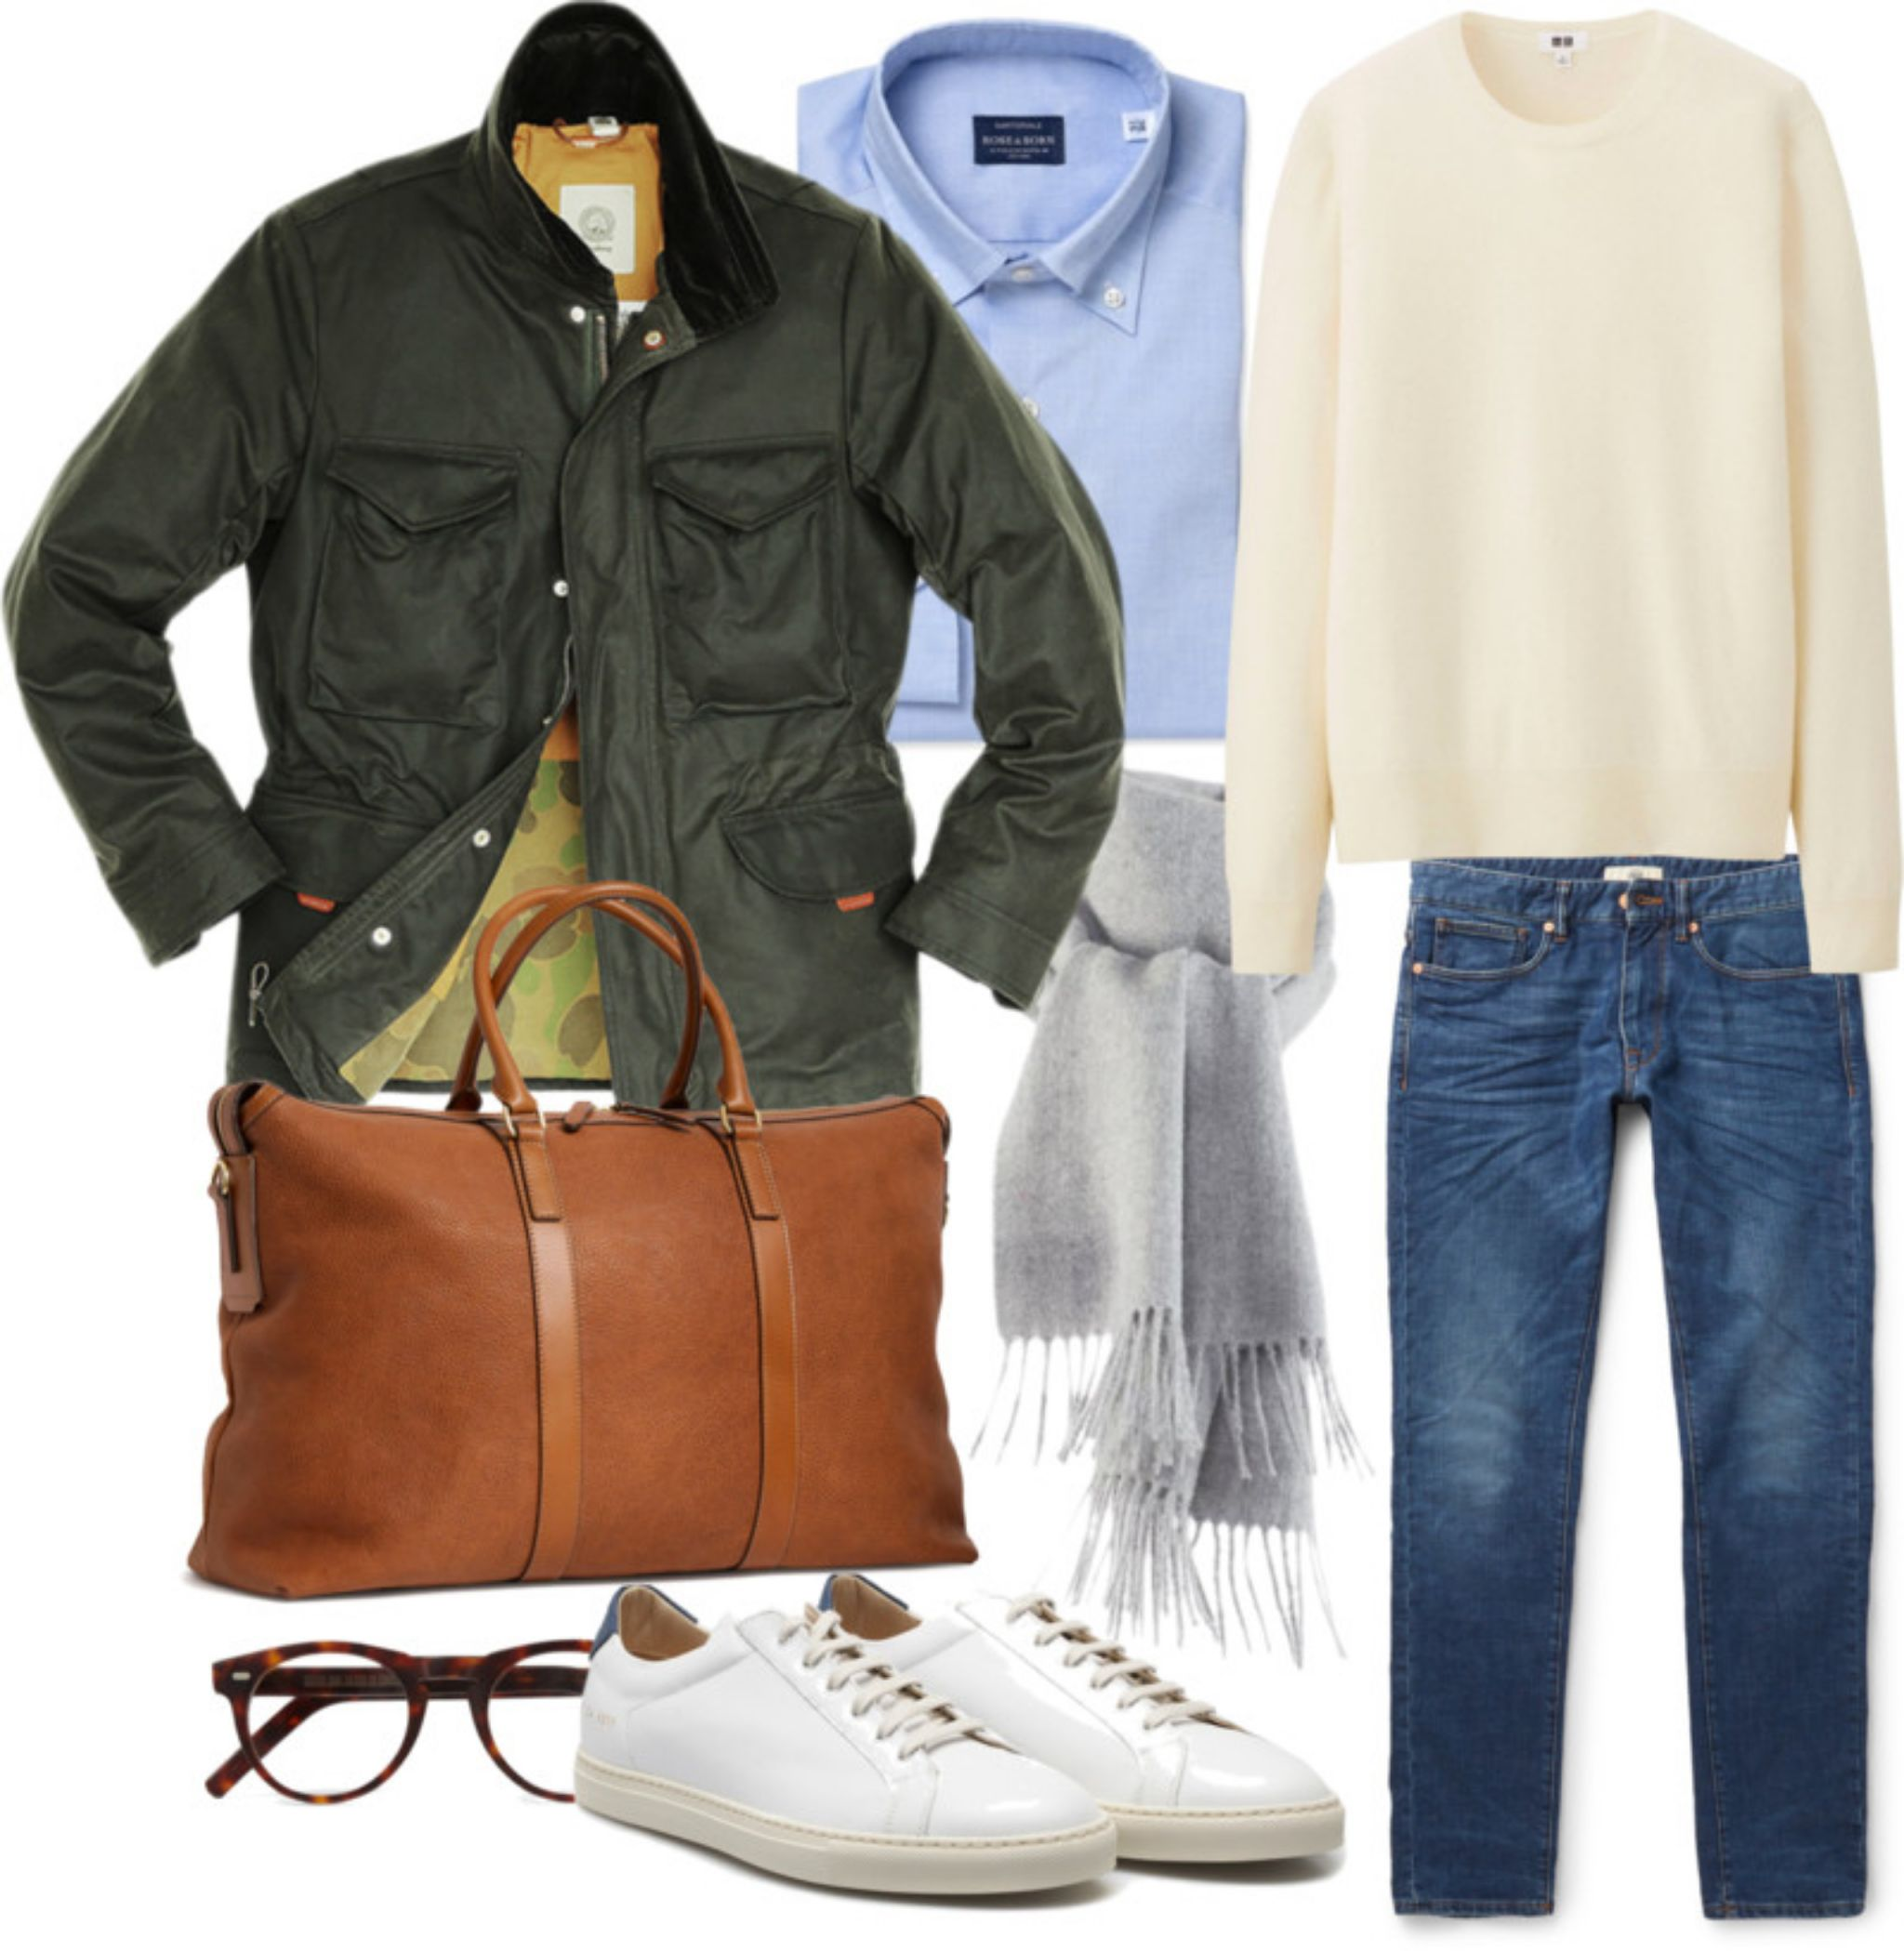 Outfit for casual weekend - cashmere knitwear with denim and field jacket